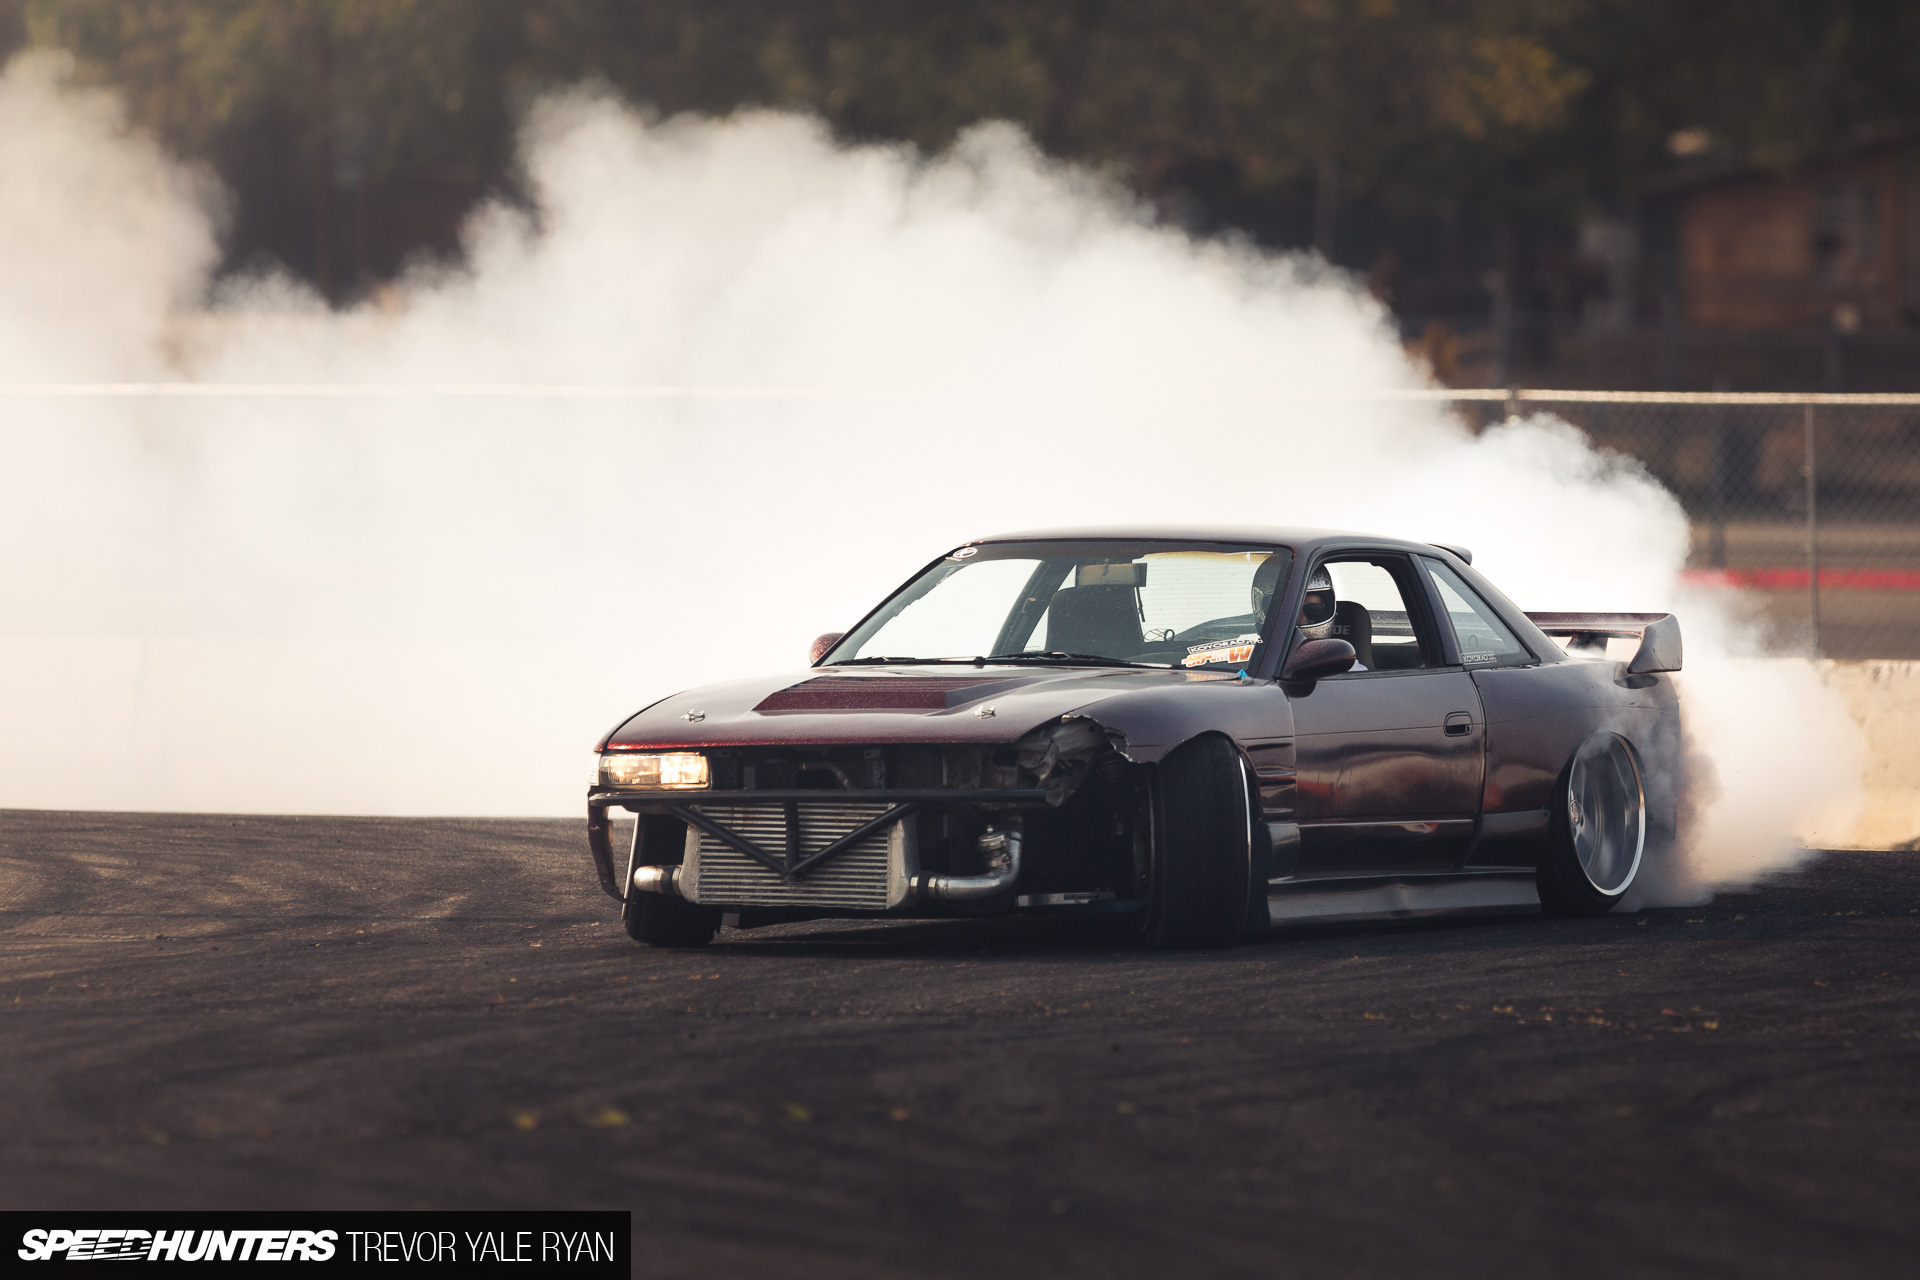 The Guy Bringing Drifting To Hot August Nights